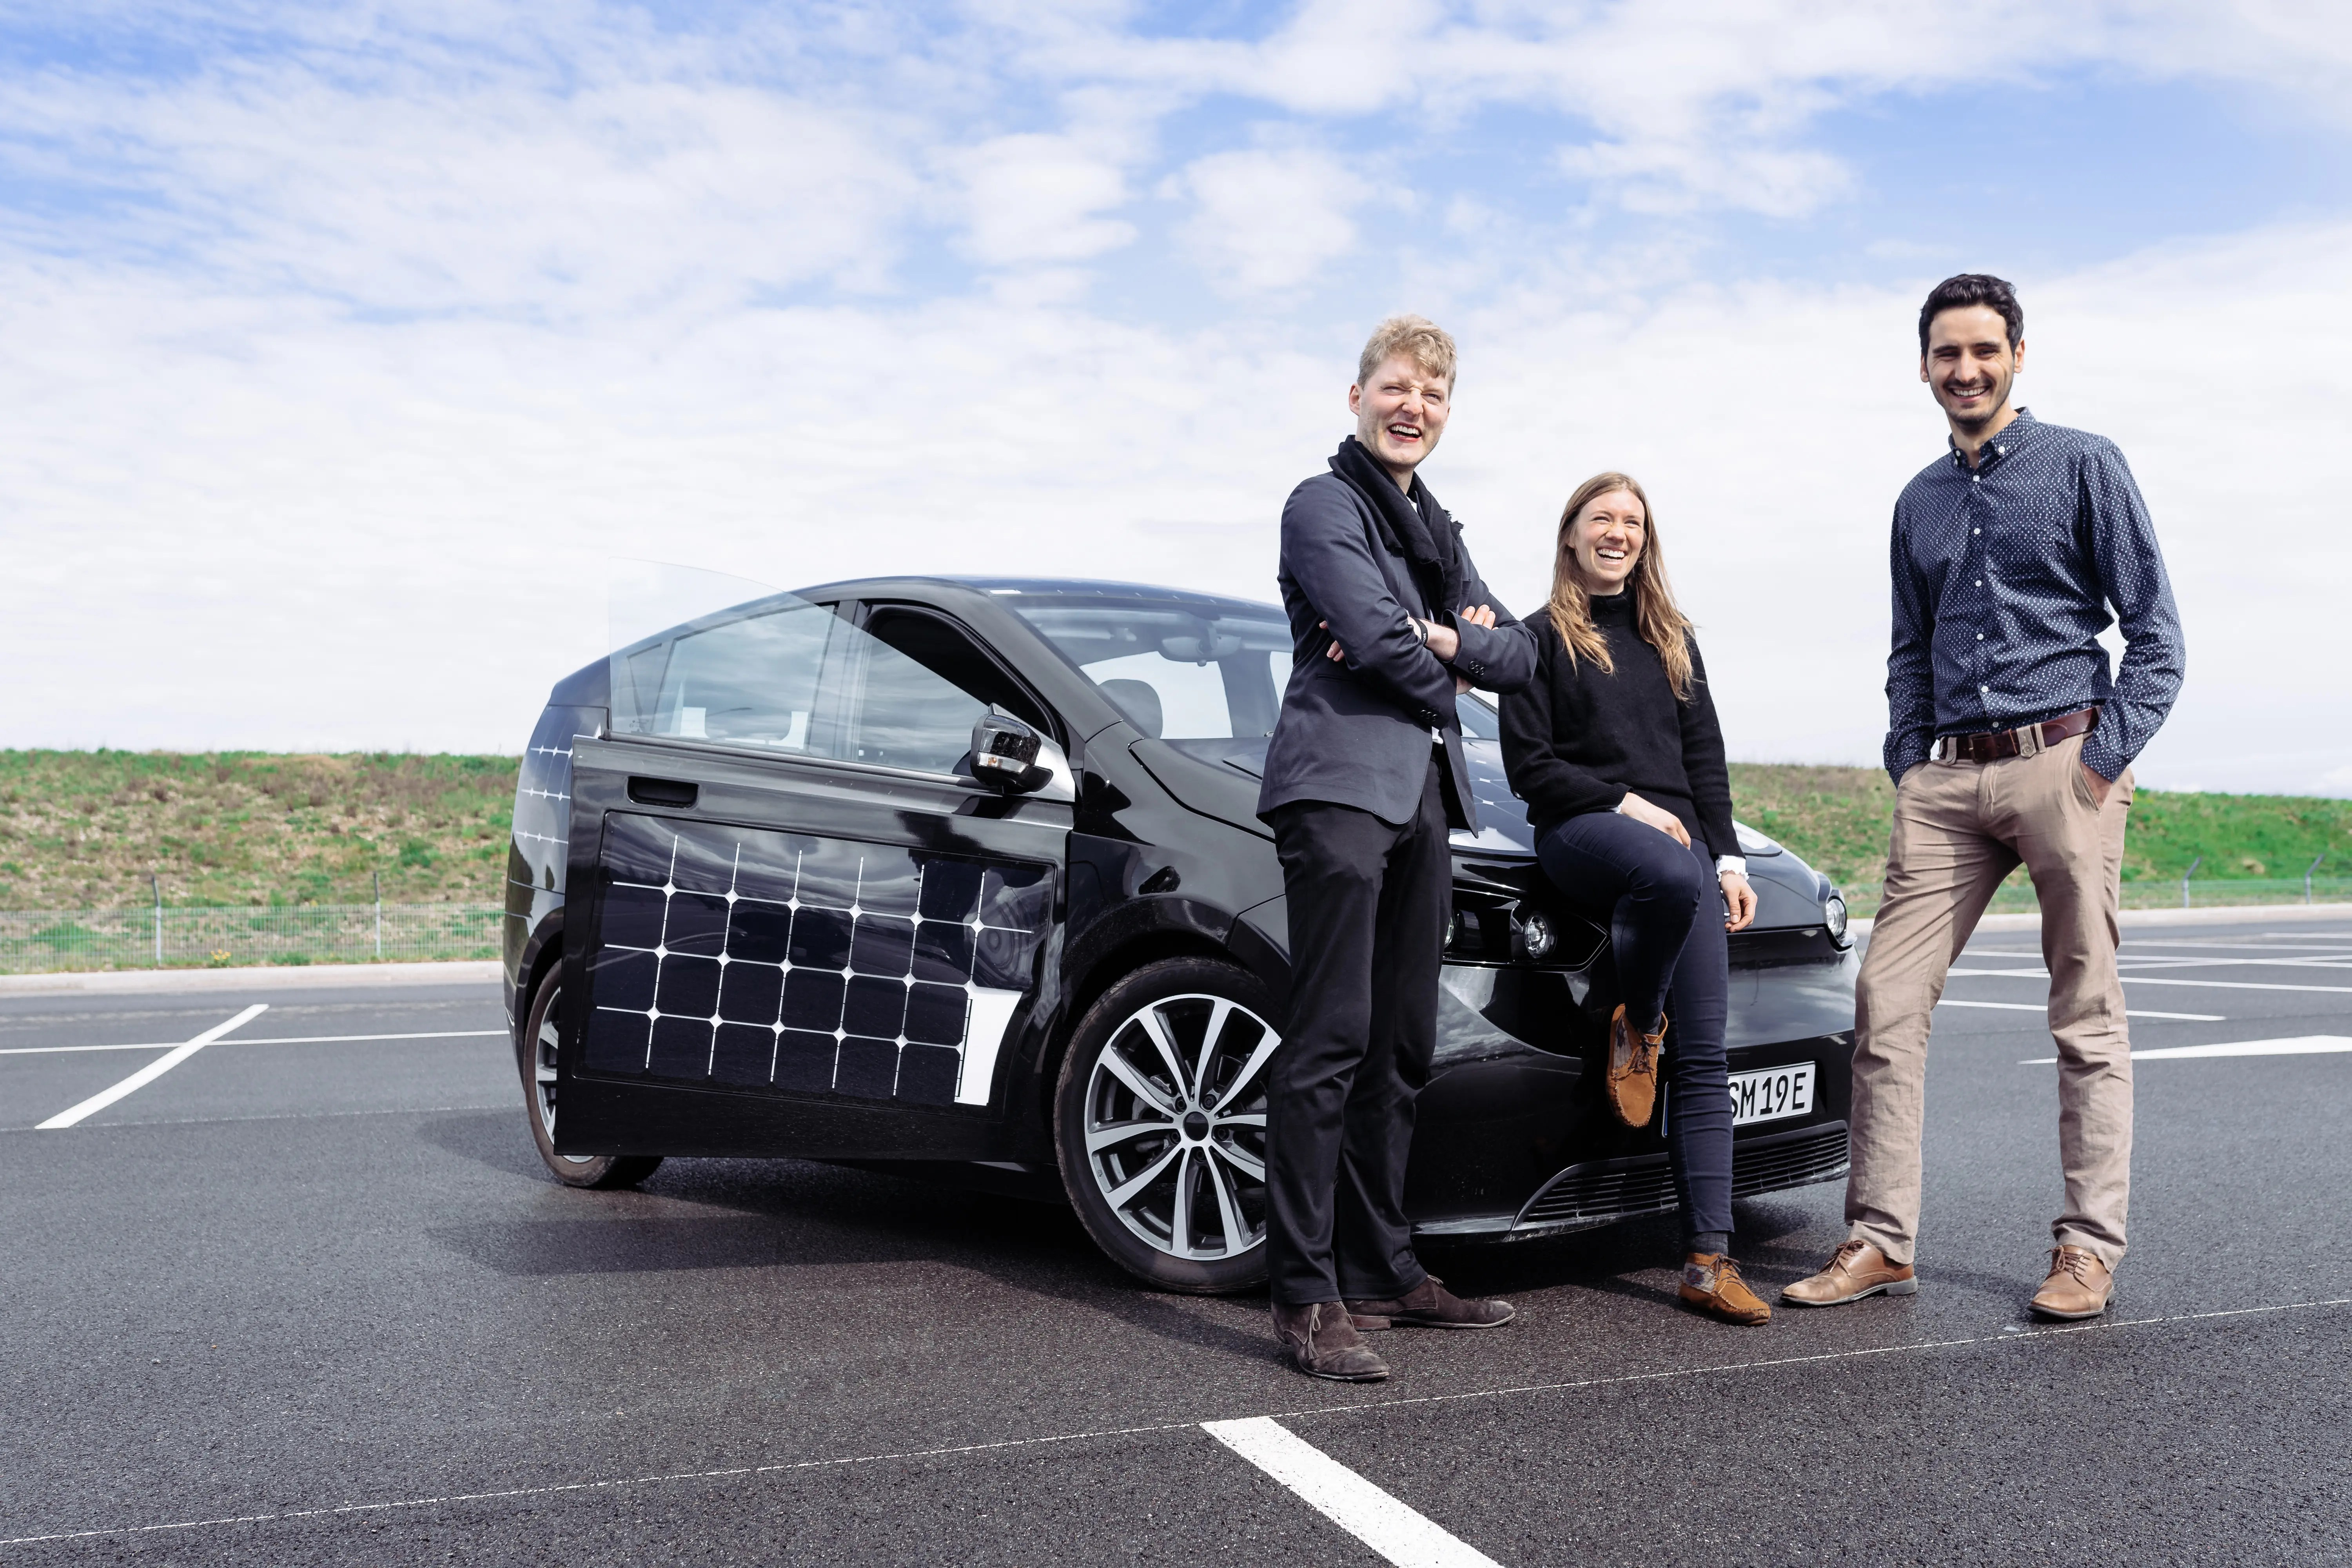 Garage Honda Sion The Solar Powered Sion Electric Car Will Be Powered By Batteries